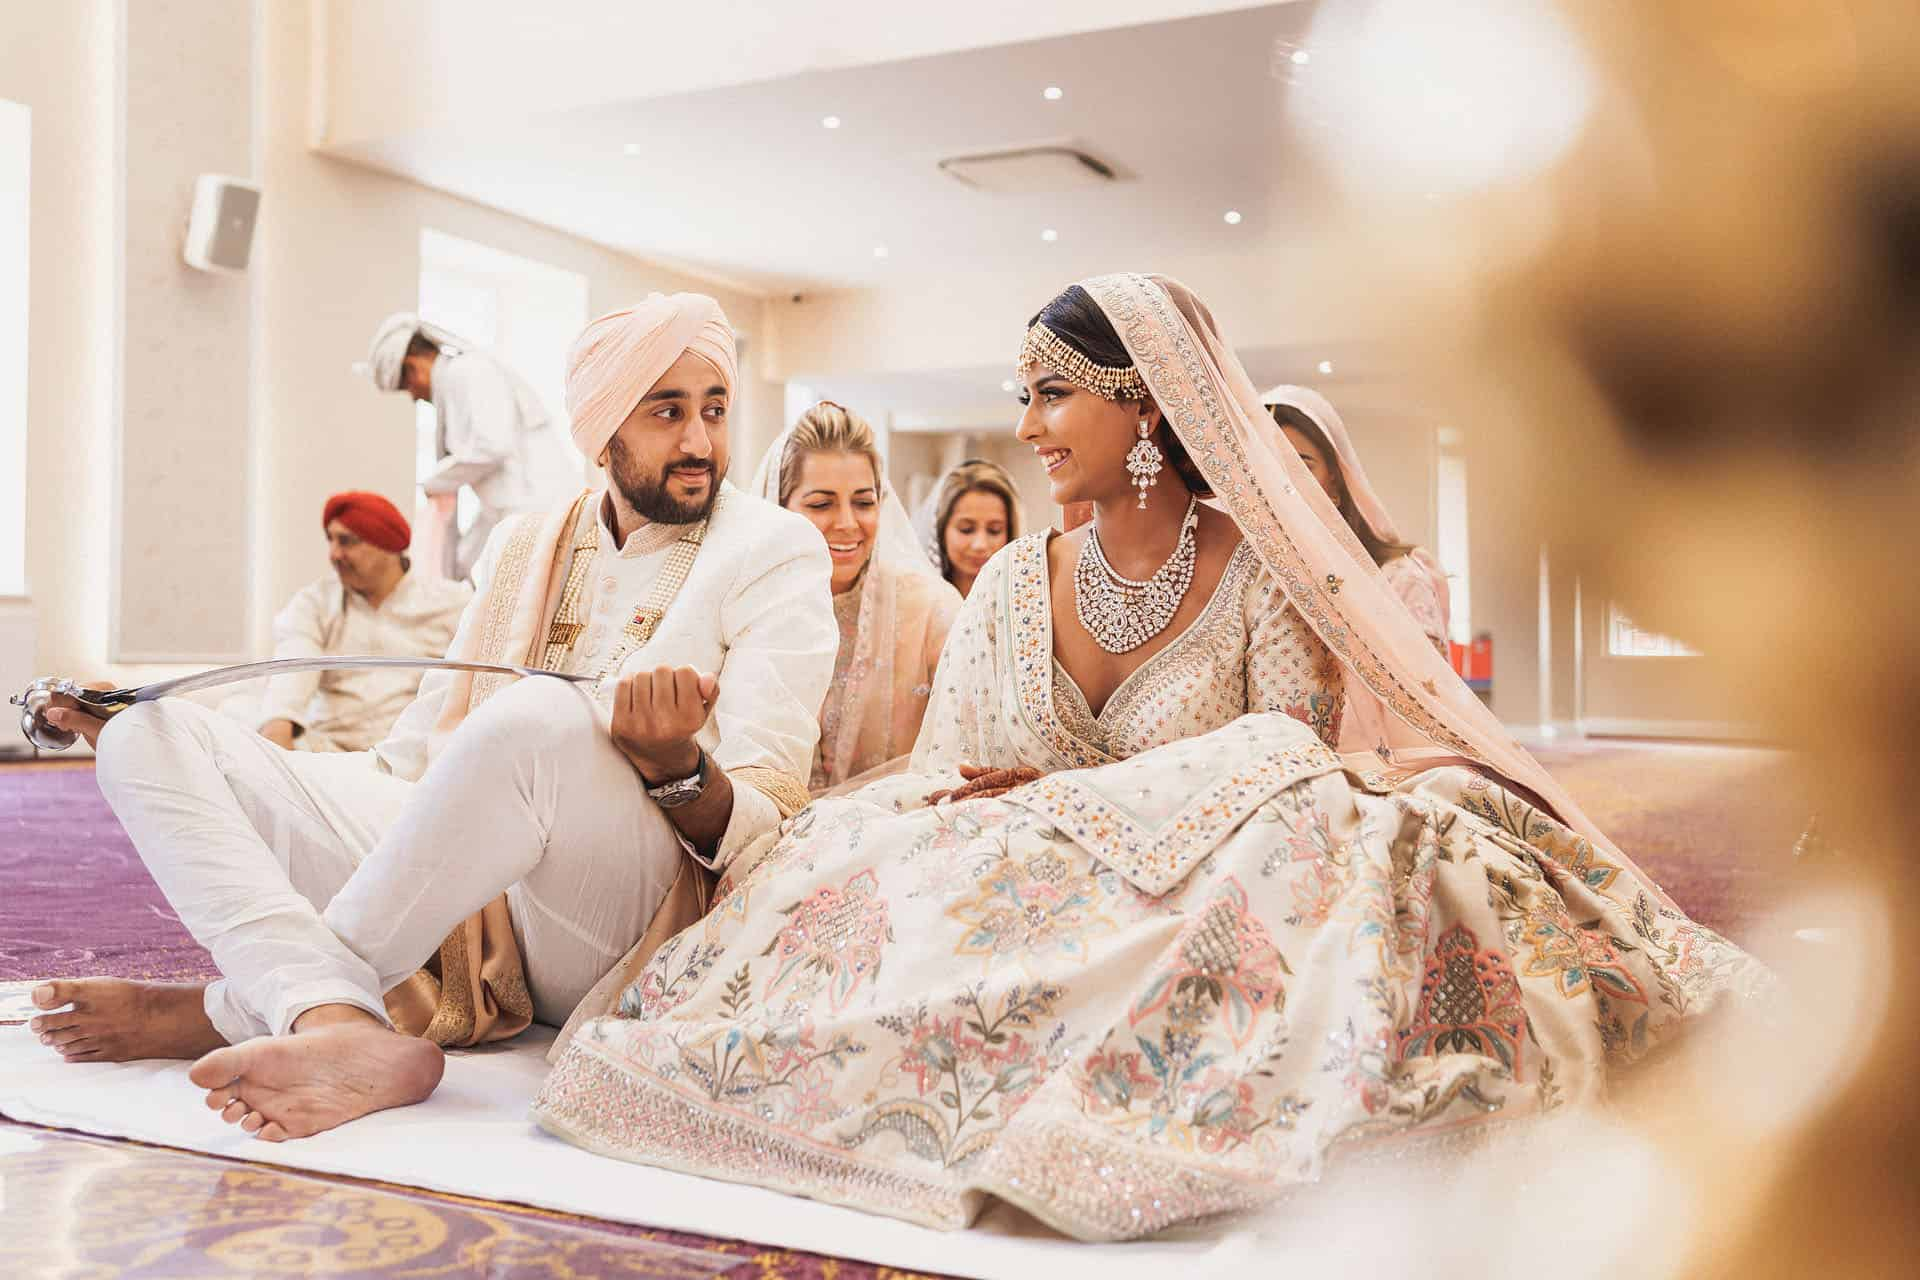 central gurdwara intimate sikh wedding